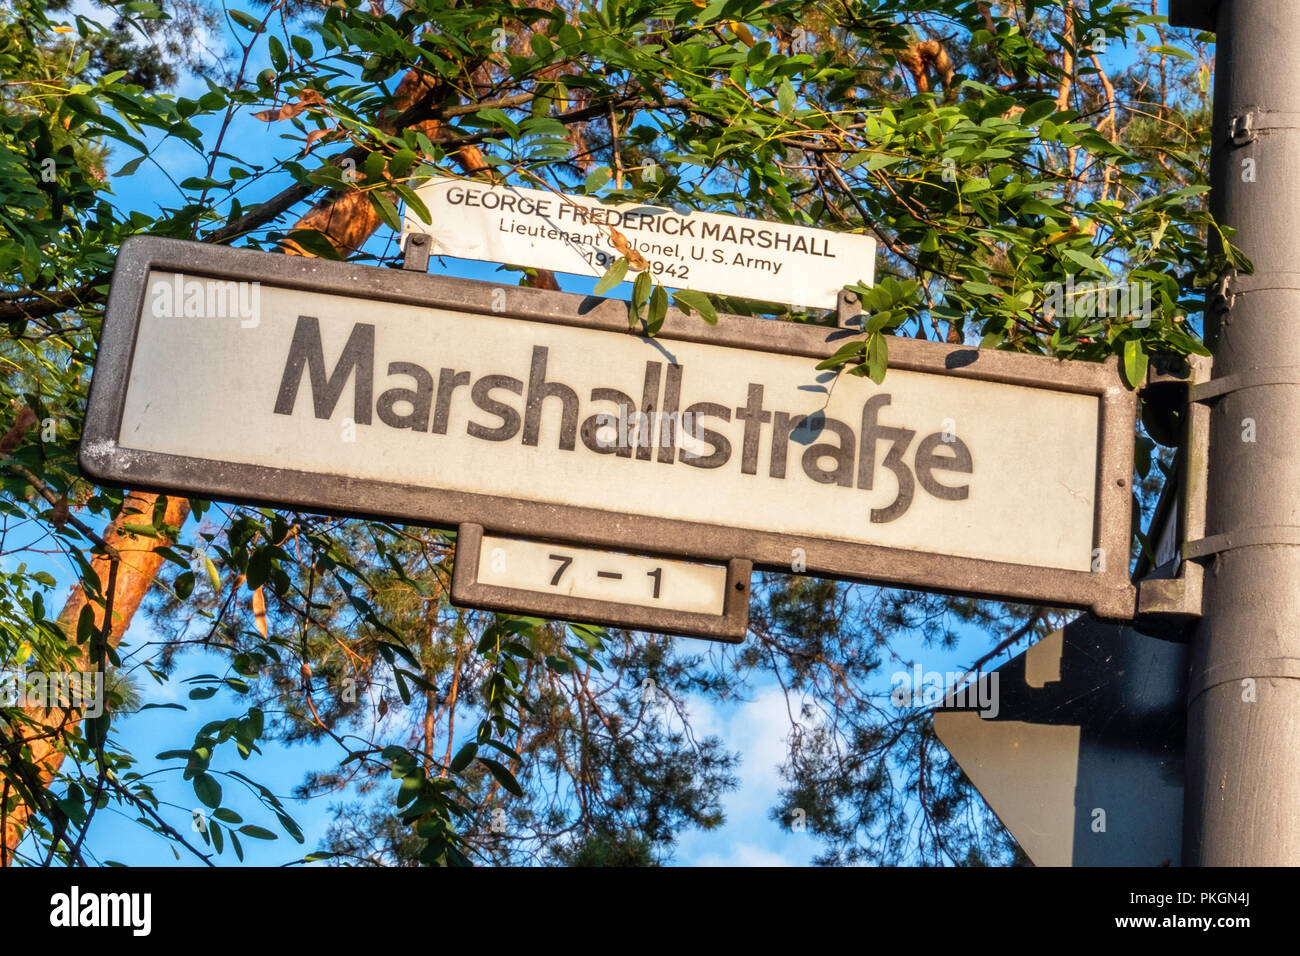 Berlin Dahlem, Marshallstrasse. Marshall street named of George Frederick Marshall, Lieutenant Colonel in US army - Stock Image